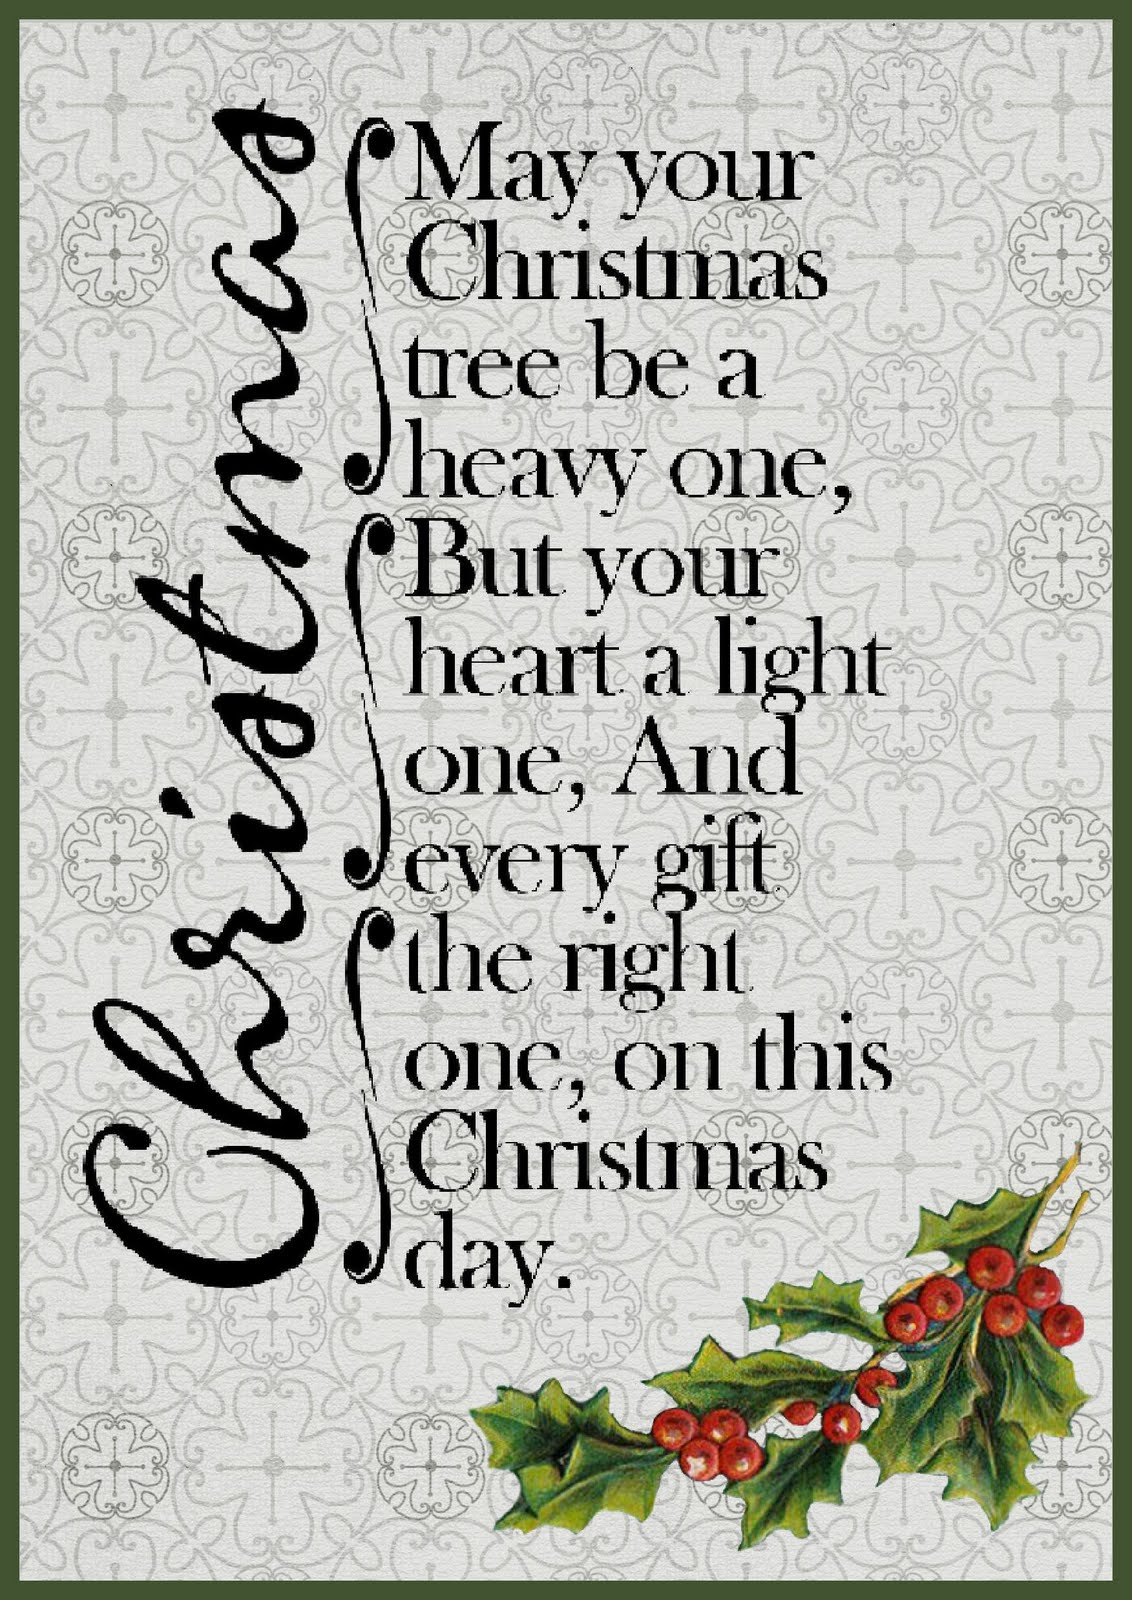 Short Christmas Greeting Quotes By Famous Authors Messages For Christmas